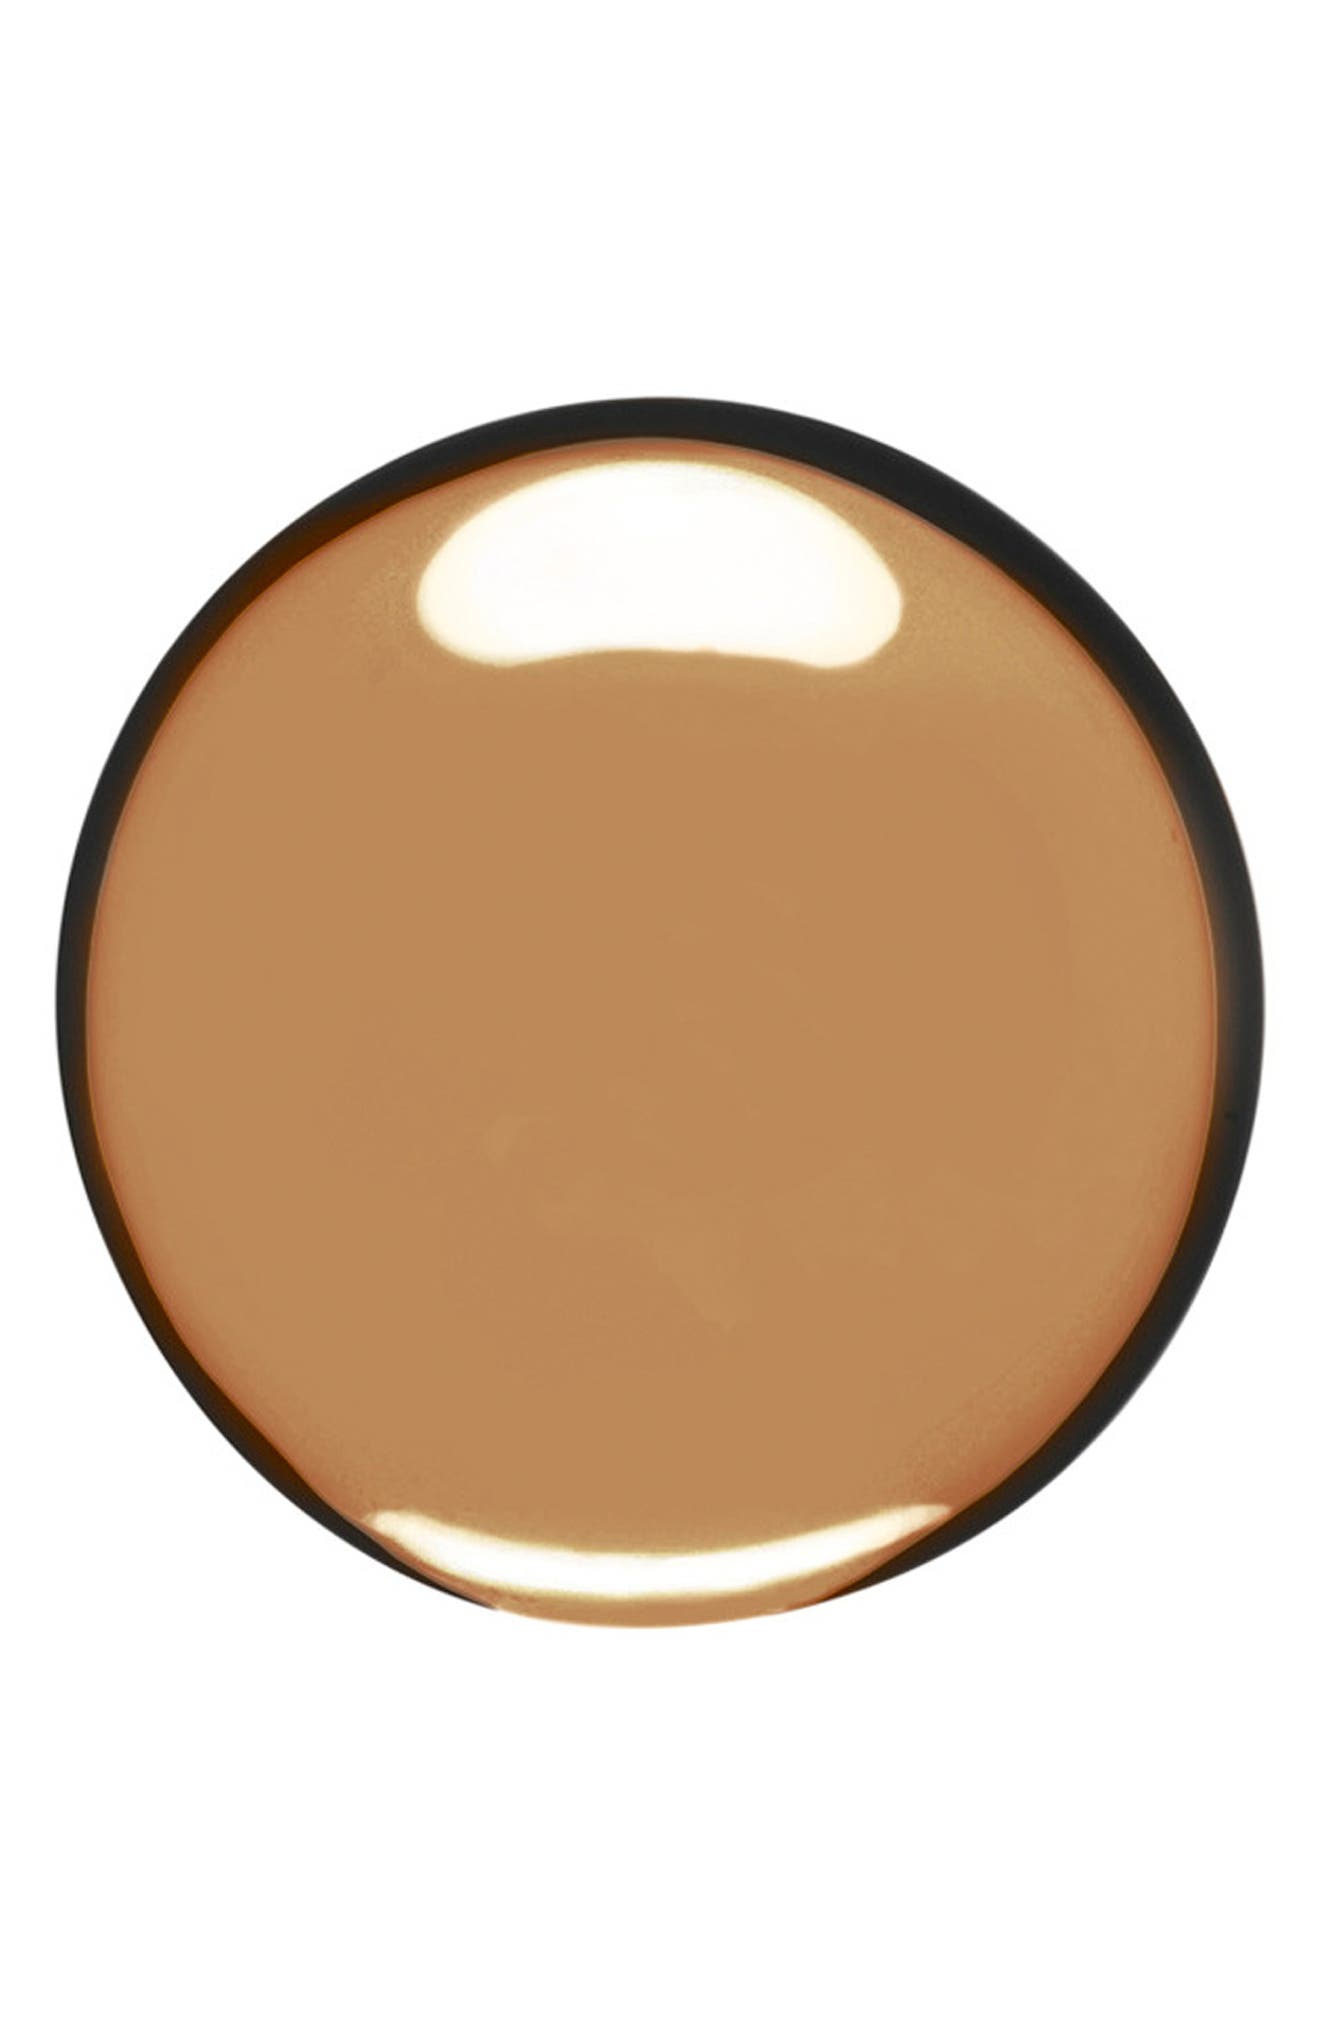 Skin Illusion Natural Hydrating Foundation,                             Alternate thumbnail 5, color,                             116.5 - COFFEE